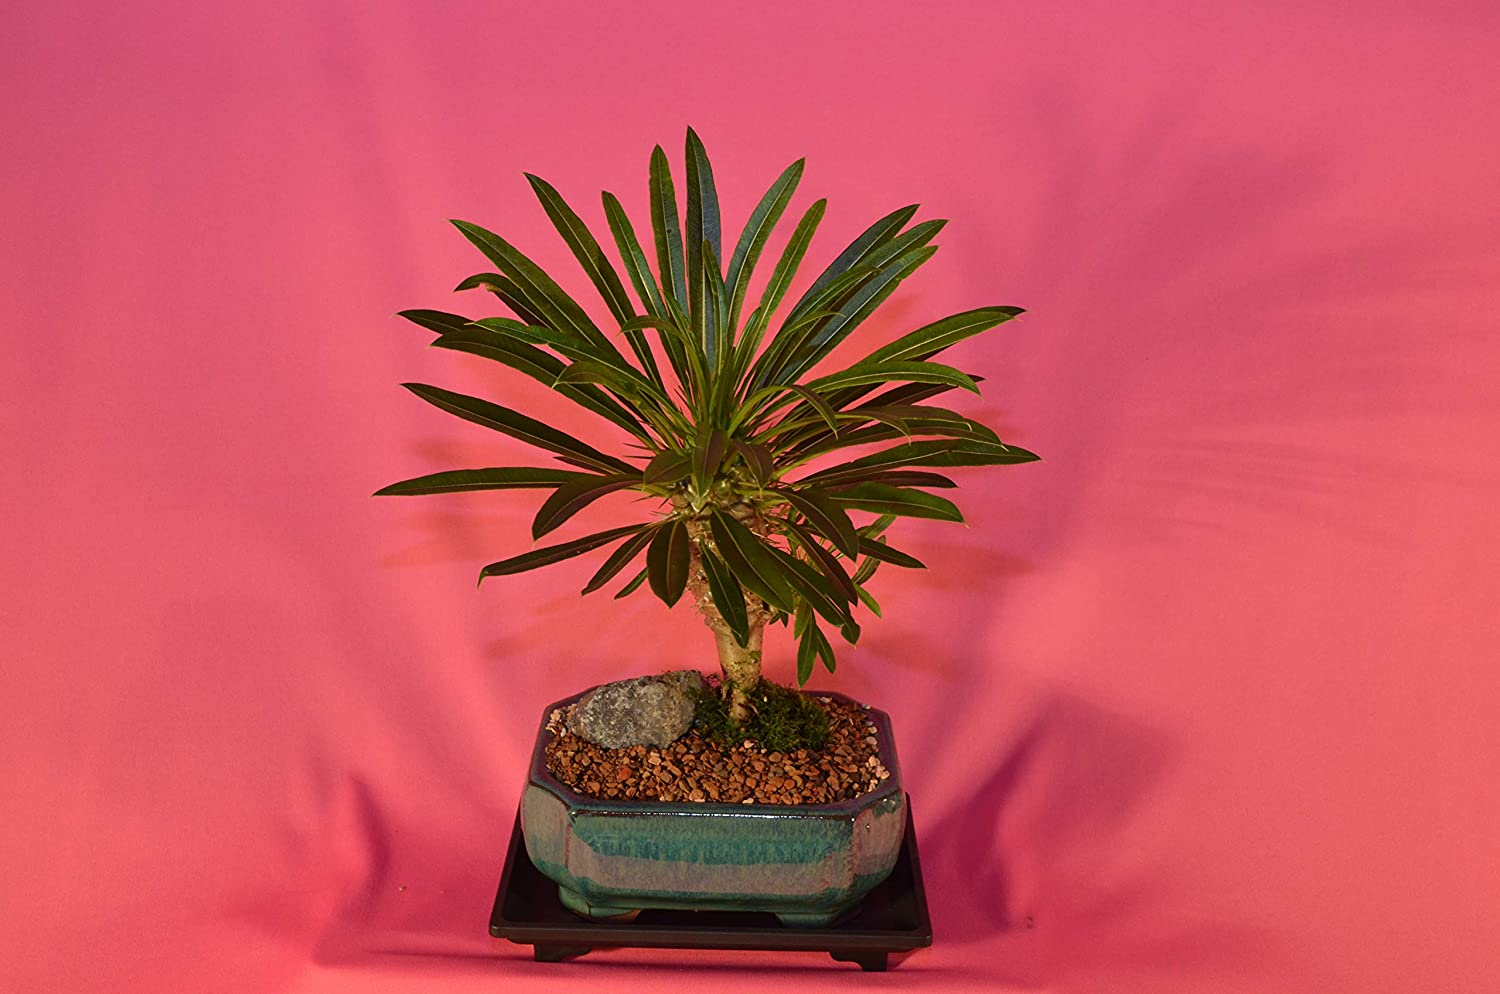 Indoor Bonsai, MADAGASCAR PALM, 6 Years Old, Flowers, Broom Style.